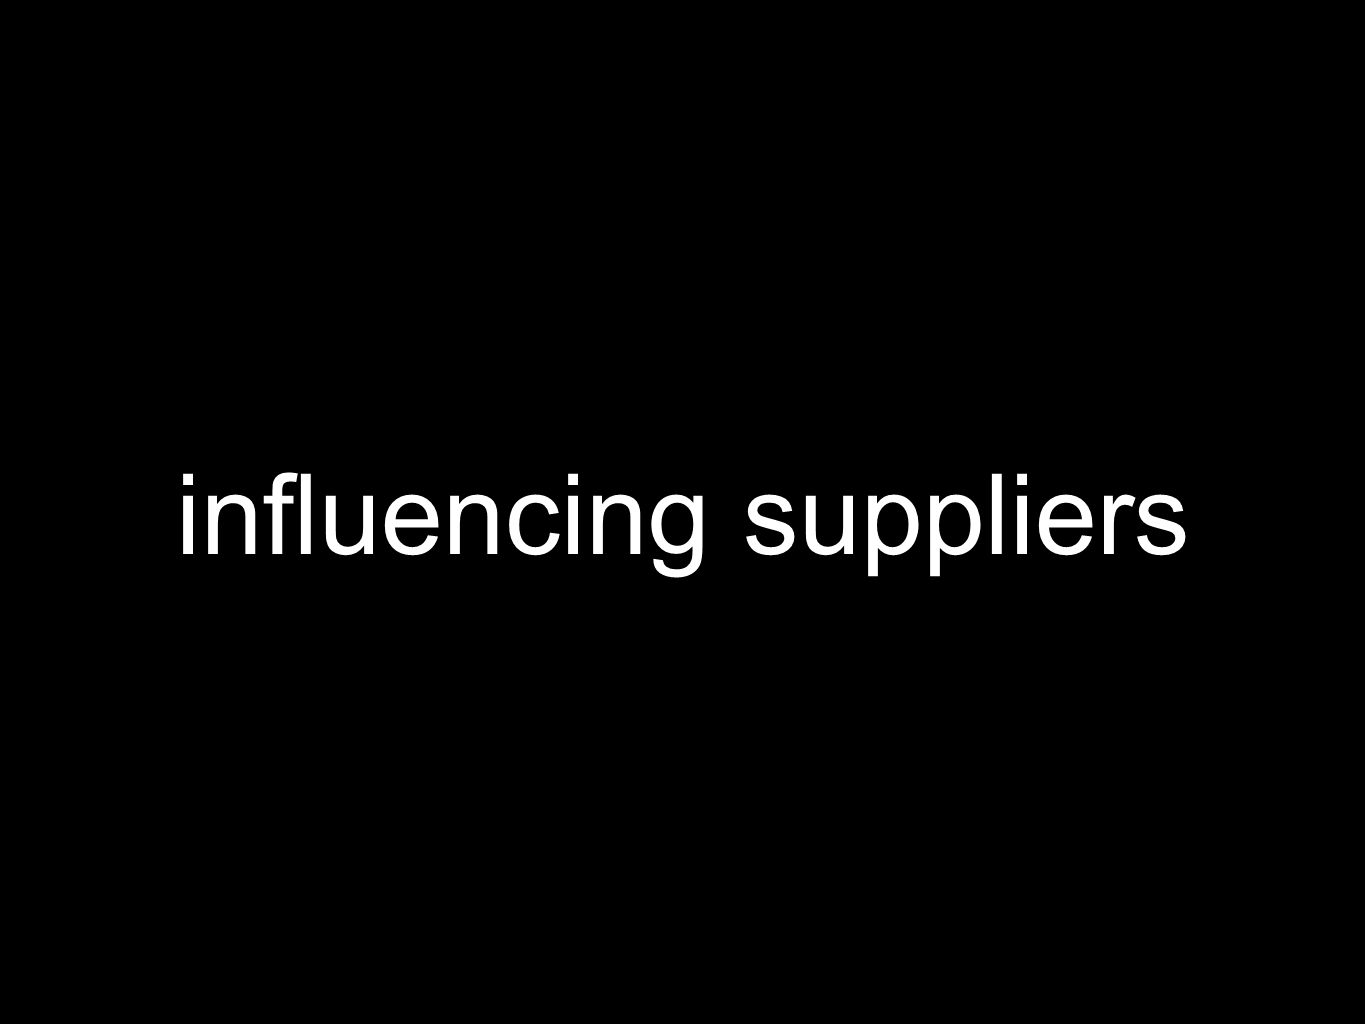 influencing suppliers